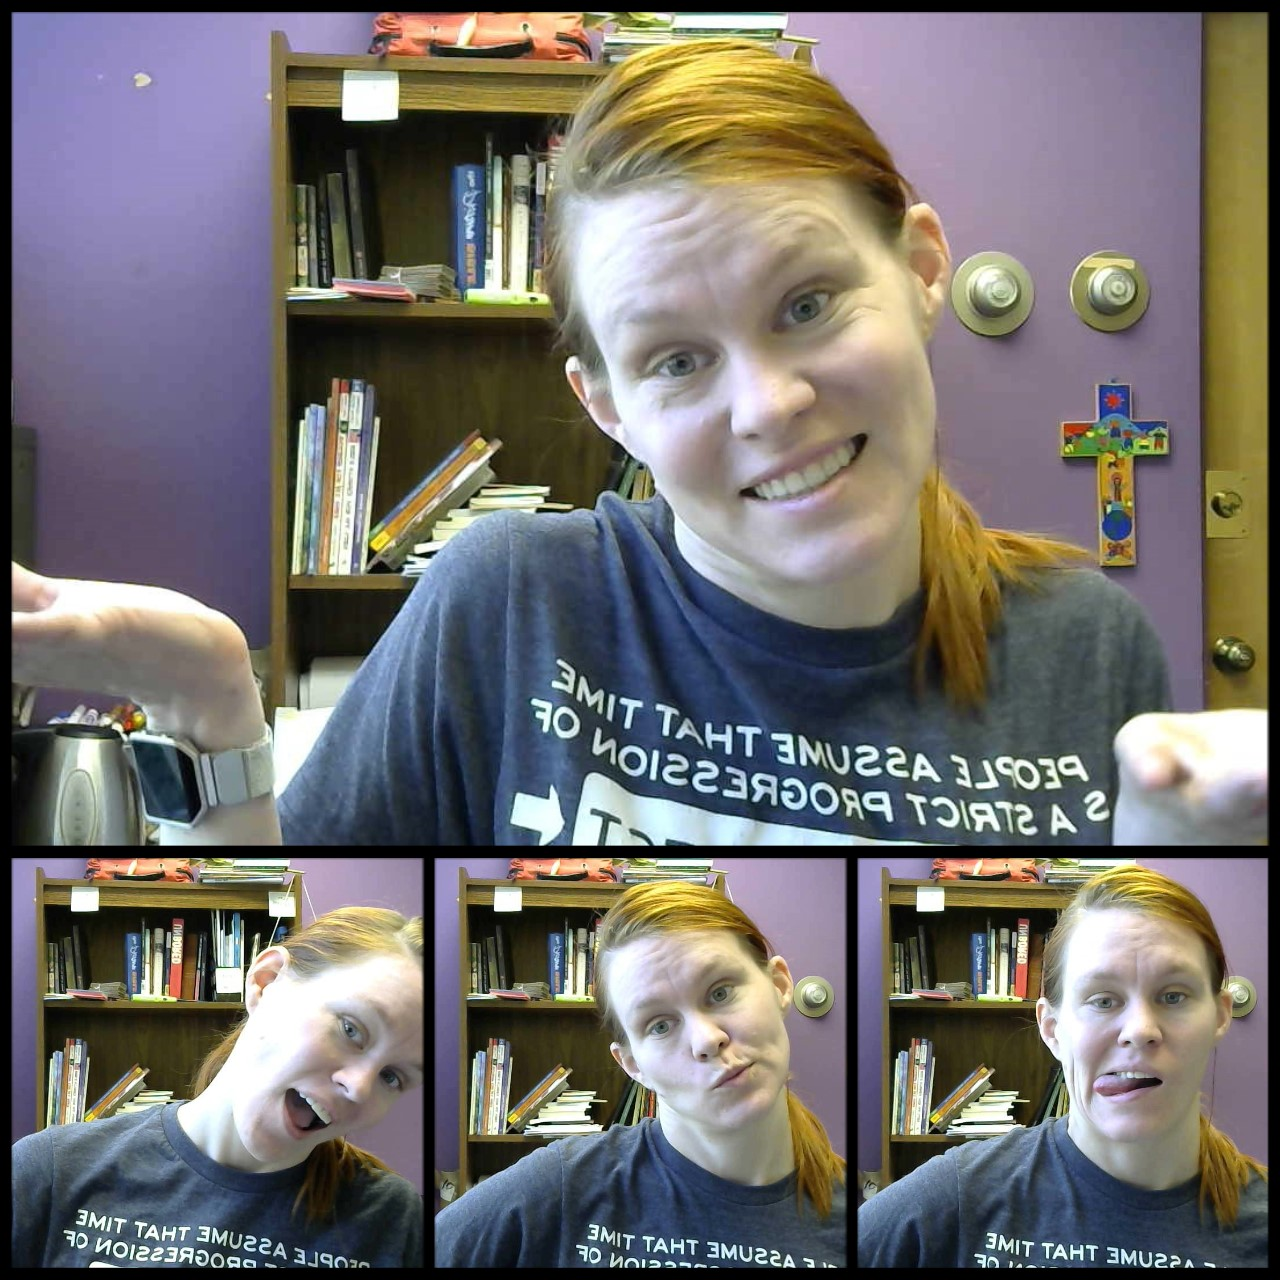 I happened to be building this site the same day I got a new webcam in my church office.